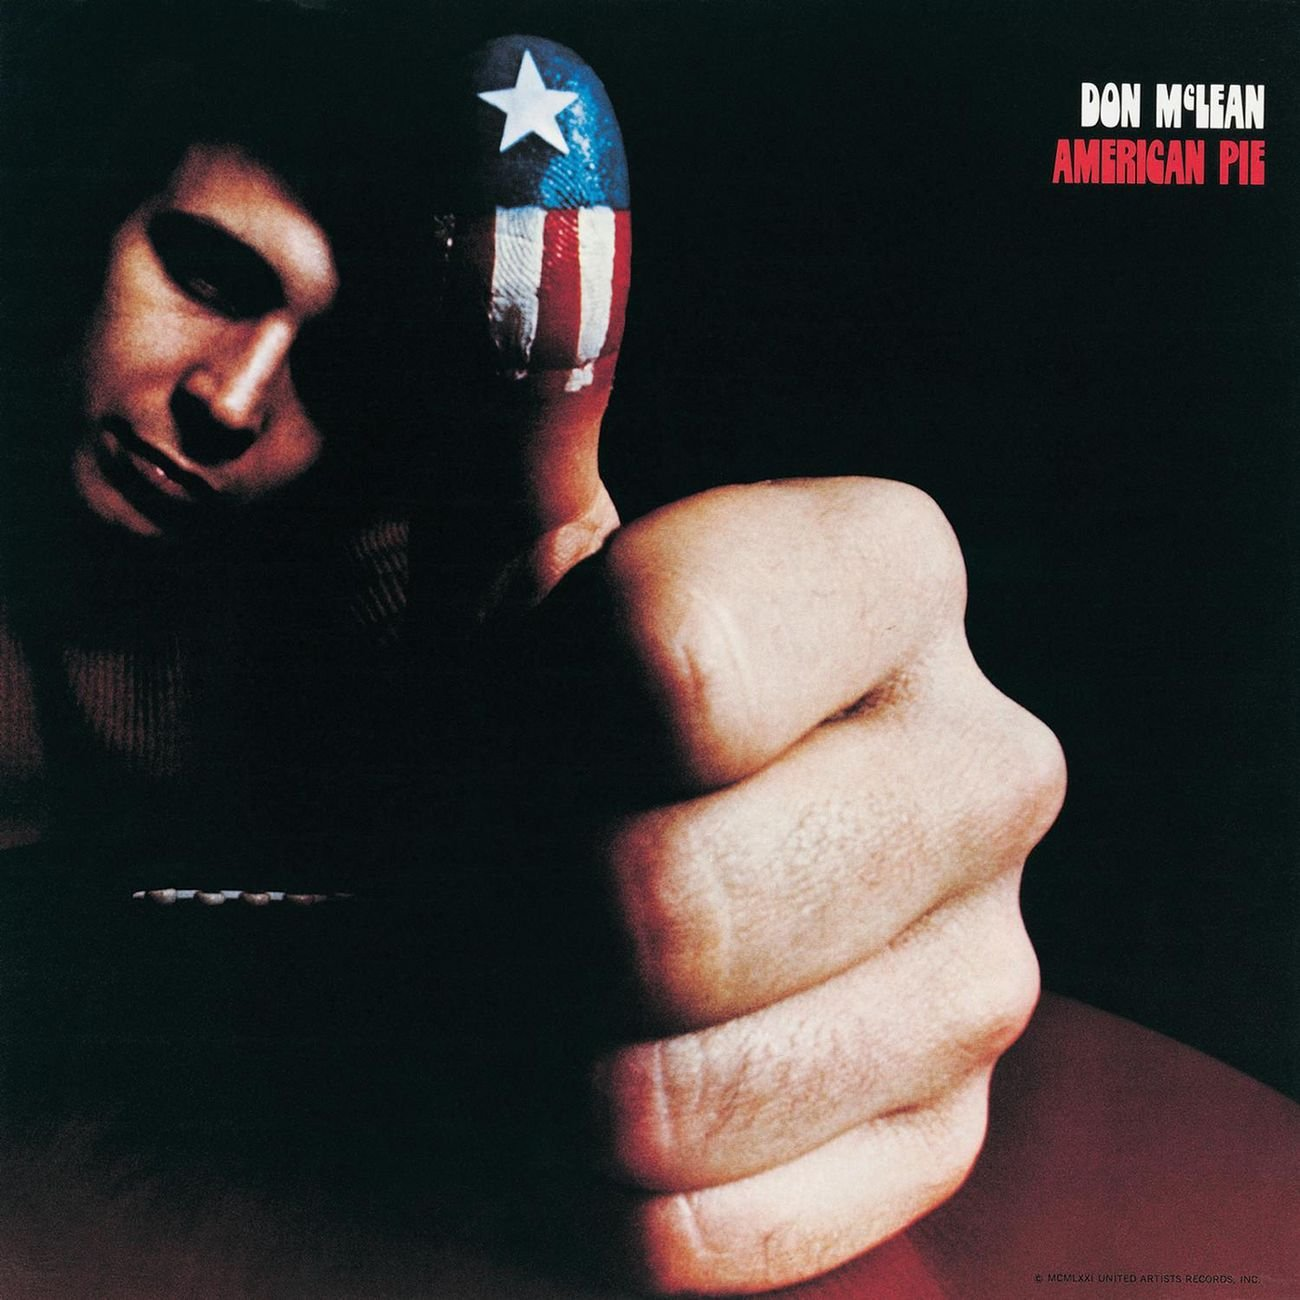 Buy American Pie Now!